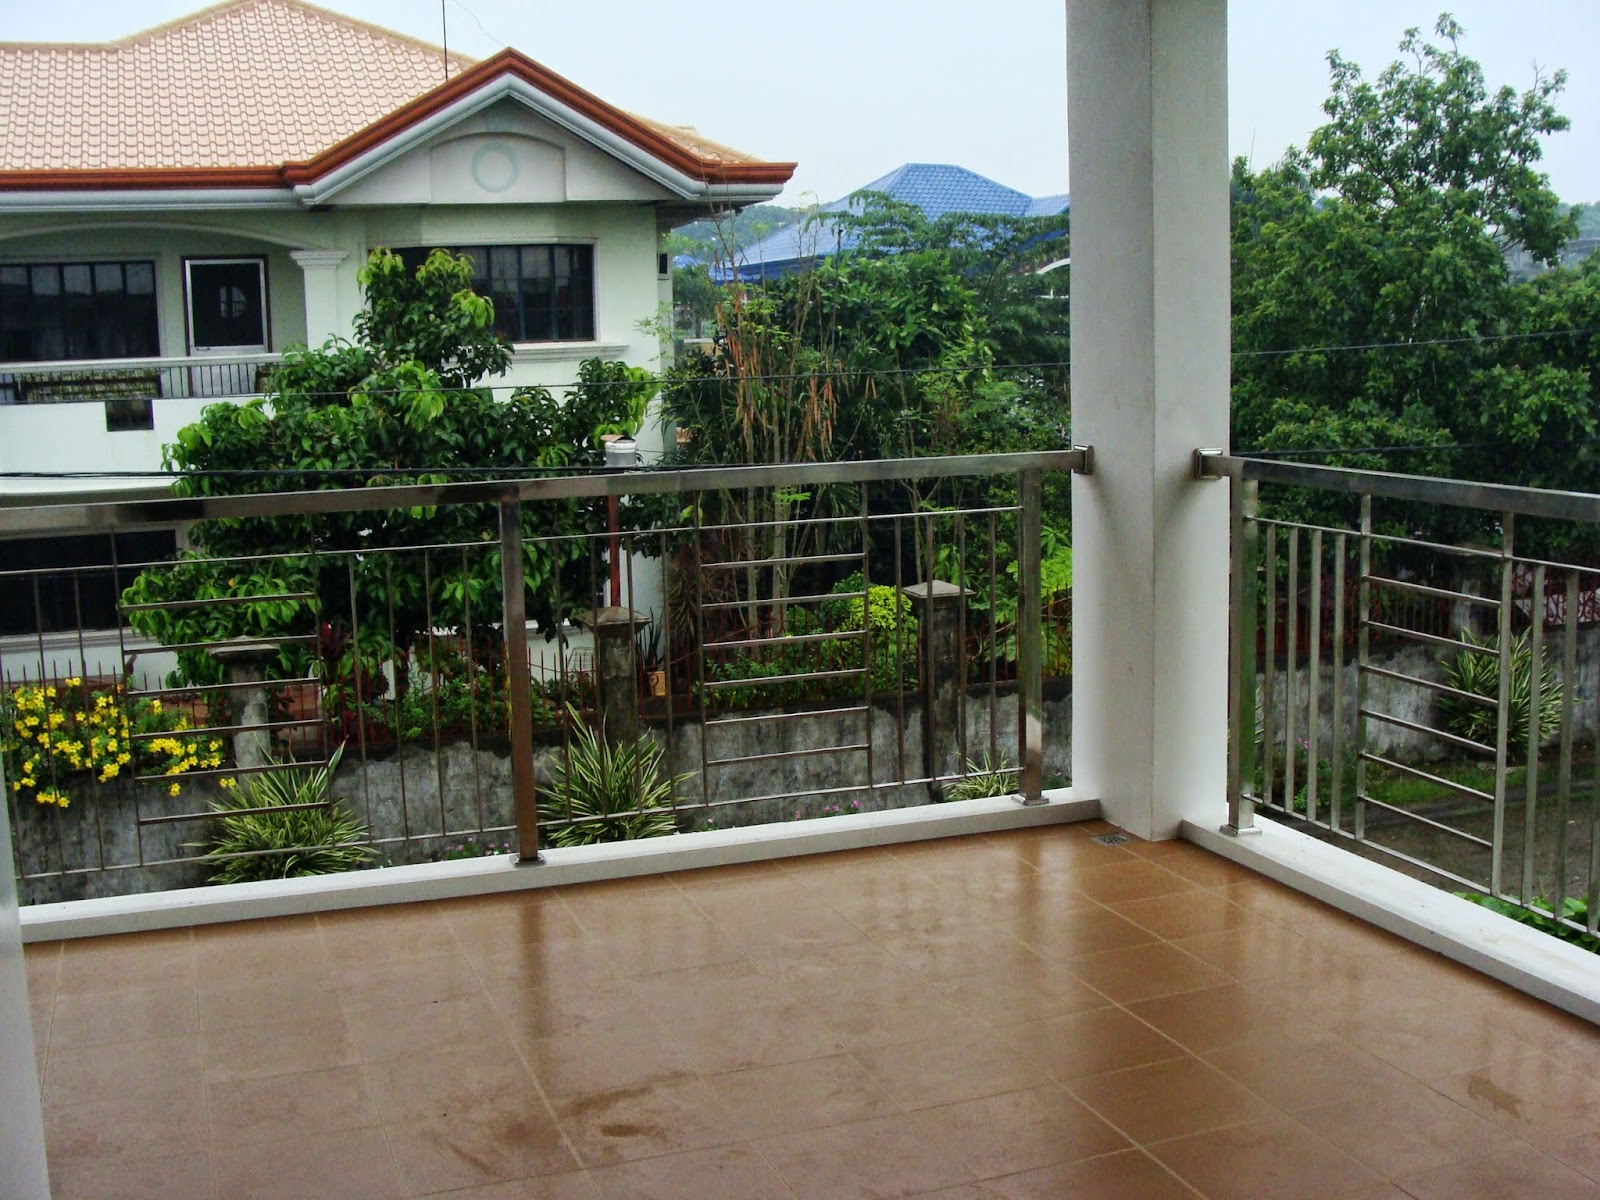 2 Storey Modern Small Houses With Gate Of Philippines